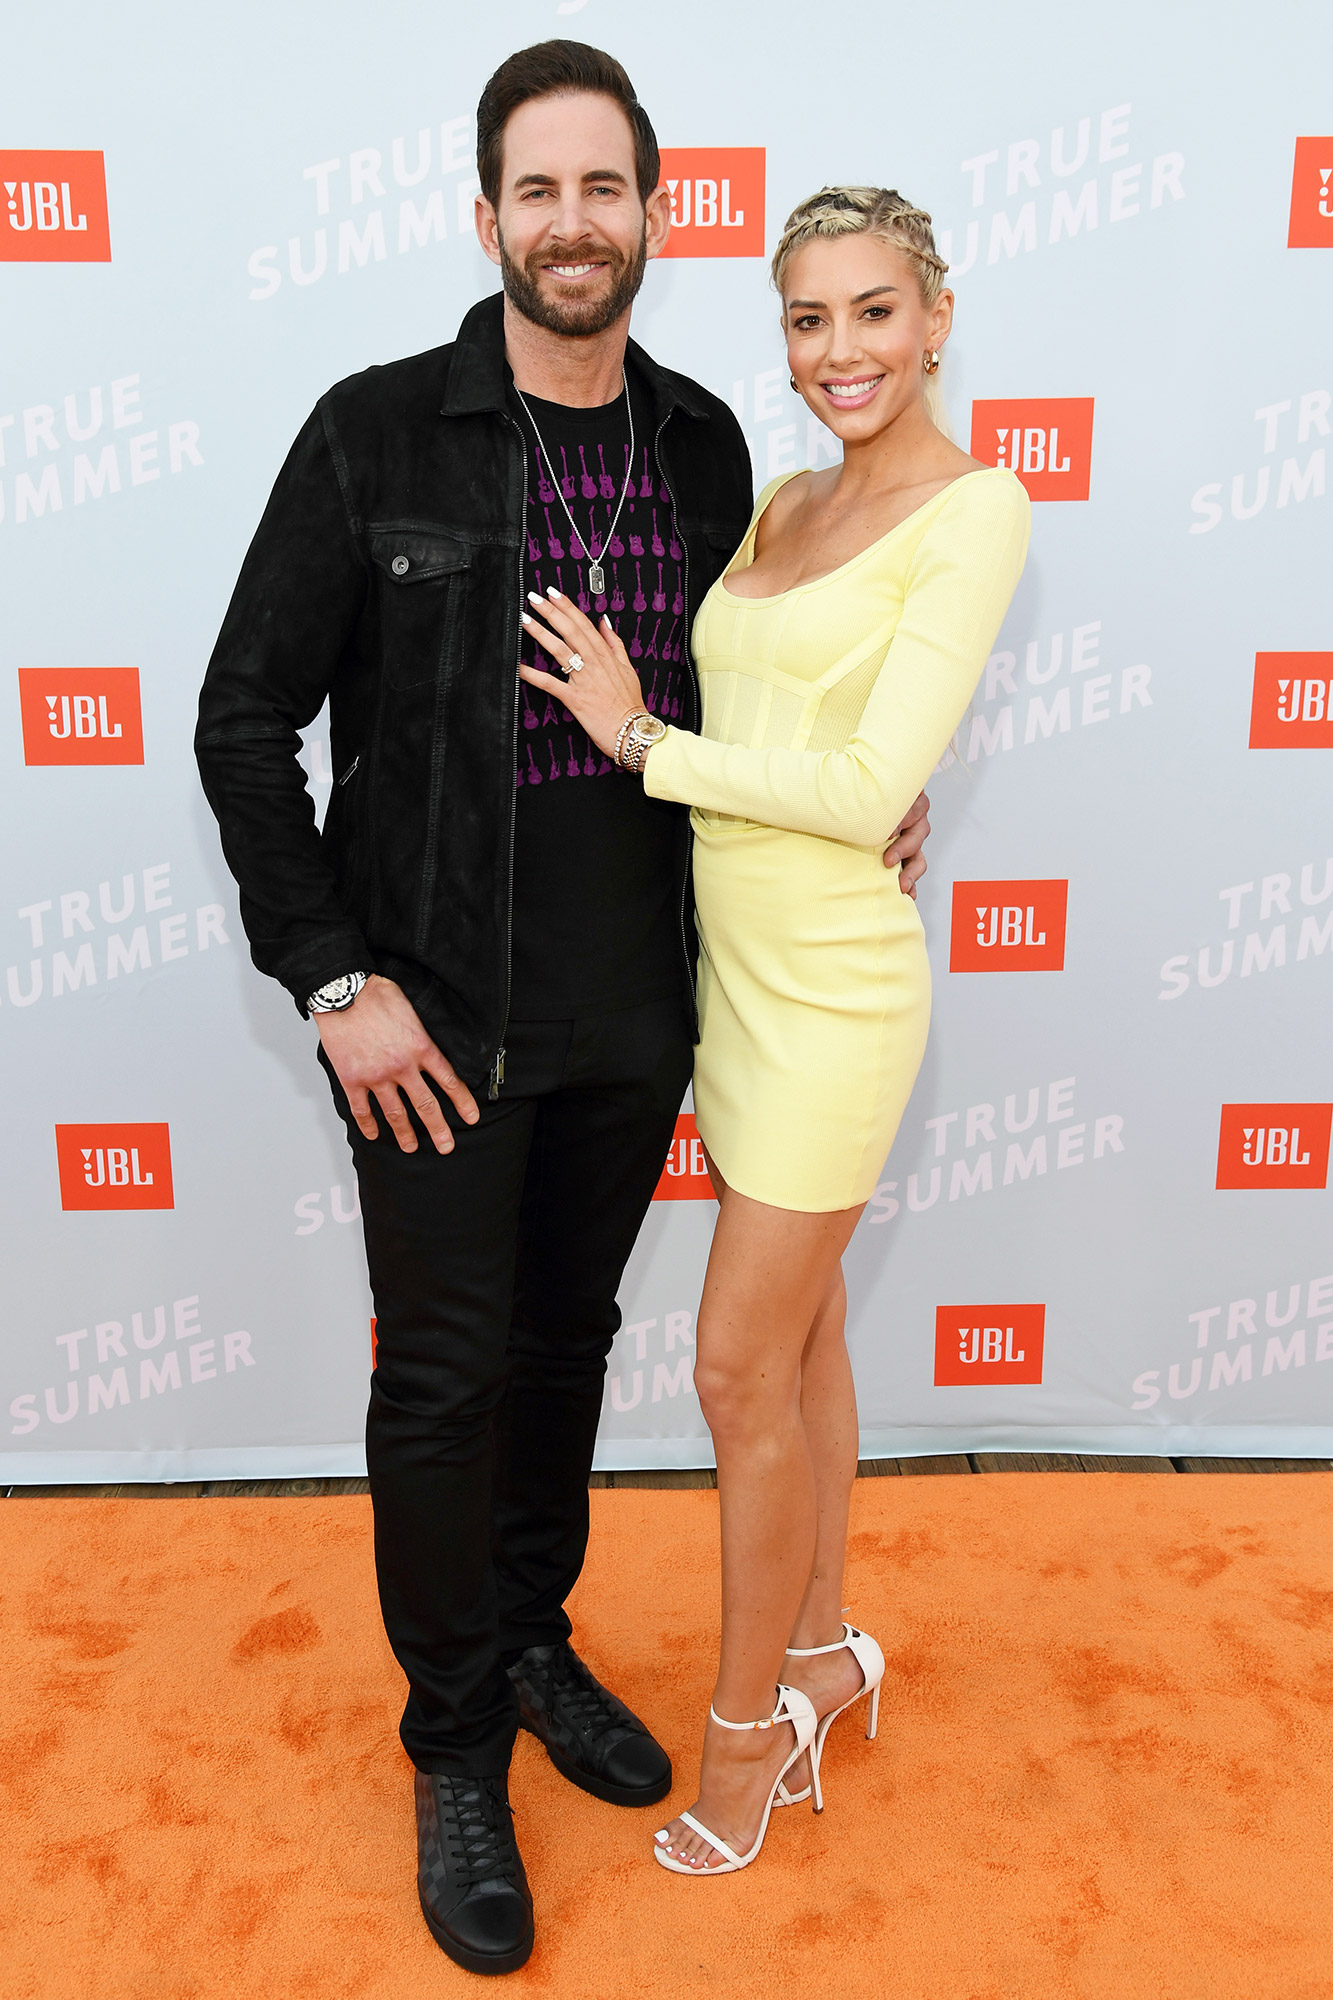 Tarek El Moussa and Heather Rae Young walk the red carpet at the JBL True Summer event. The exclusive event featured performances by DJ Sophia Eris, Bebe Rexha, and Jason Derulo. JBL is celebrating the return of live music with a donation to the National Independent Venue Association's (NIVA) #SaveOurStages initiative